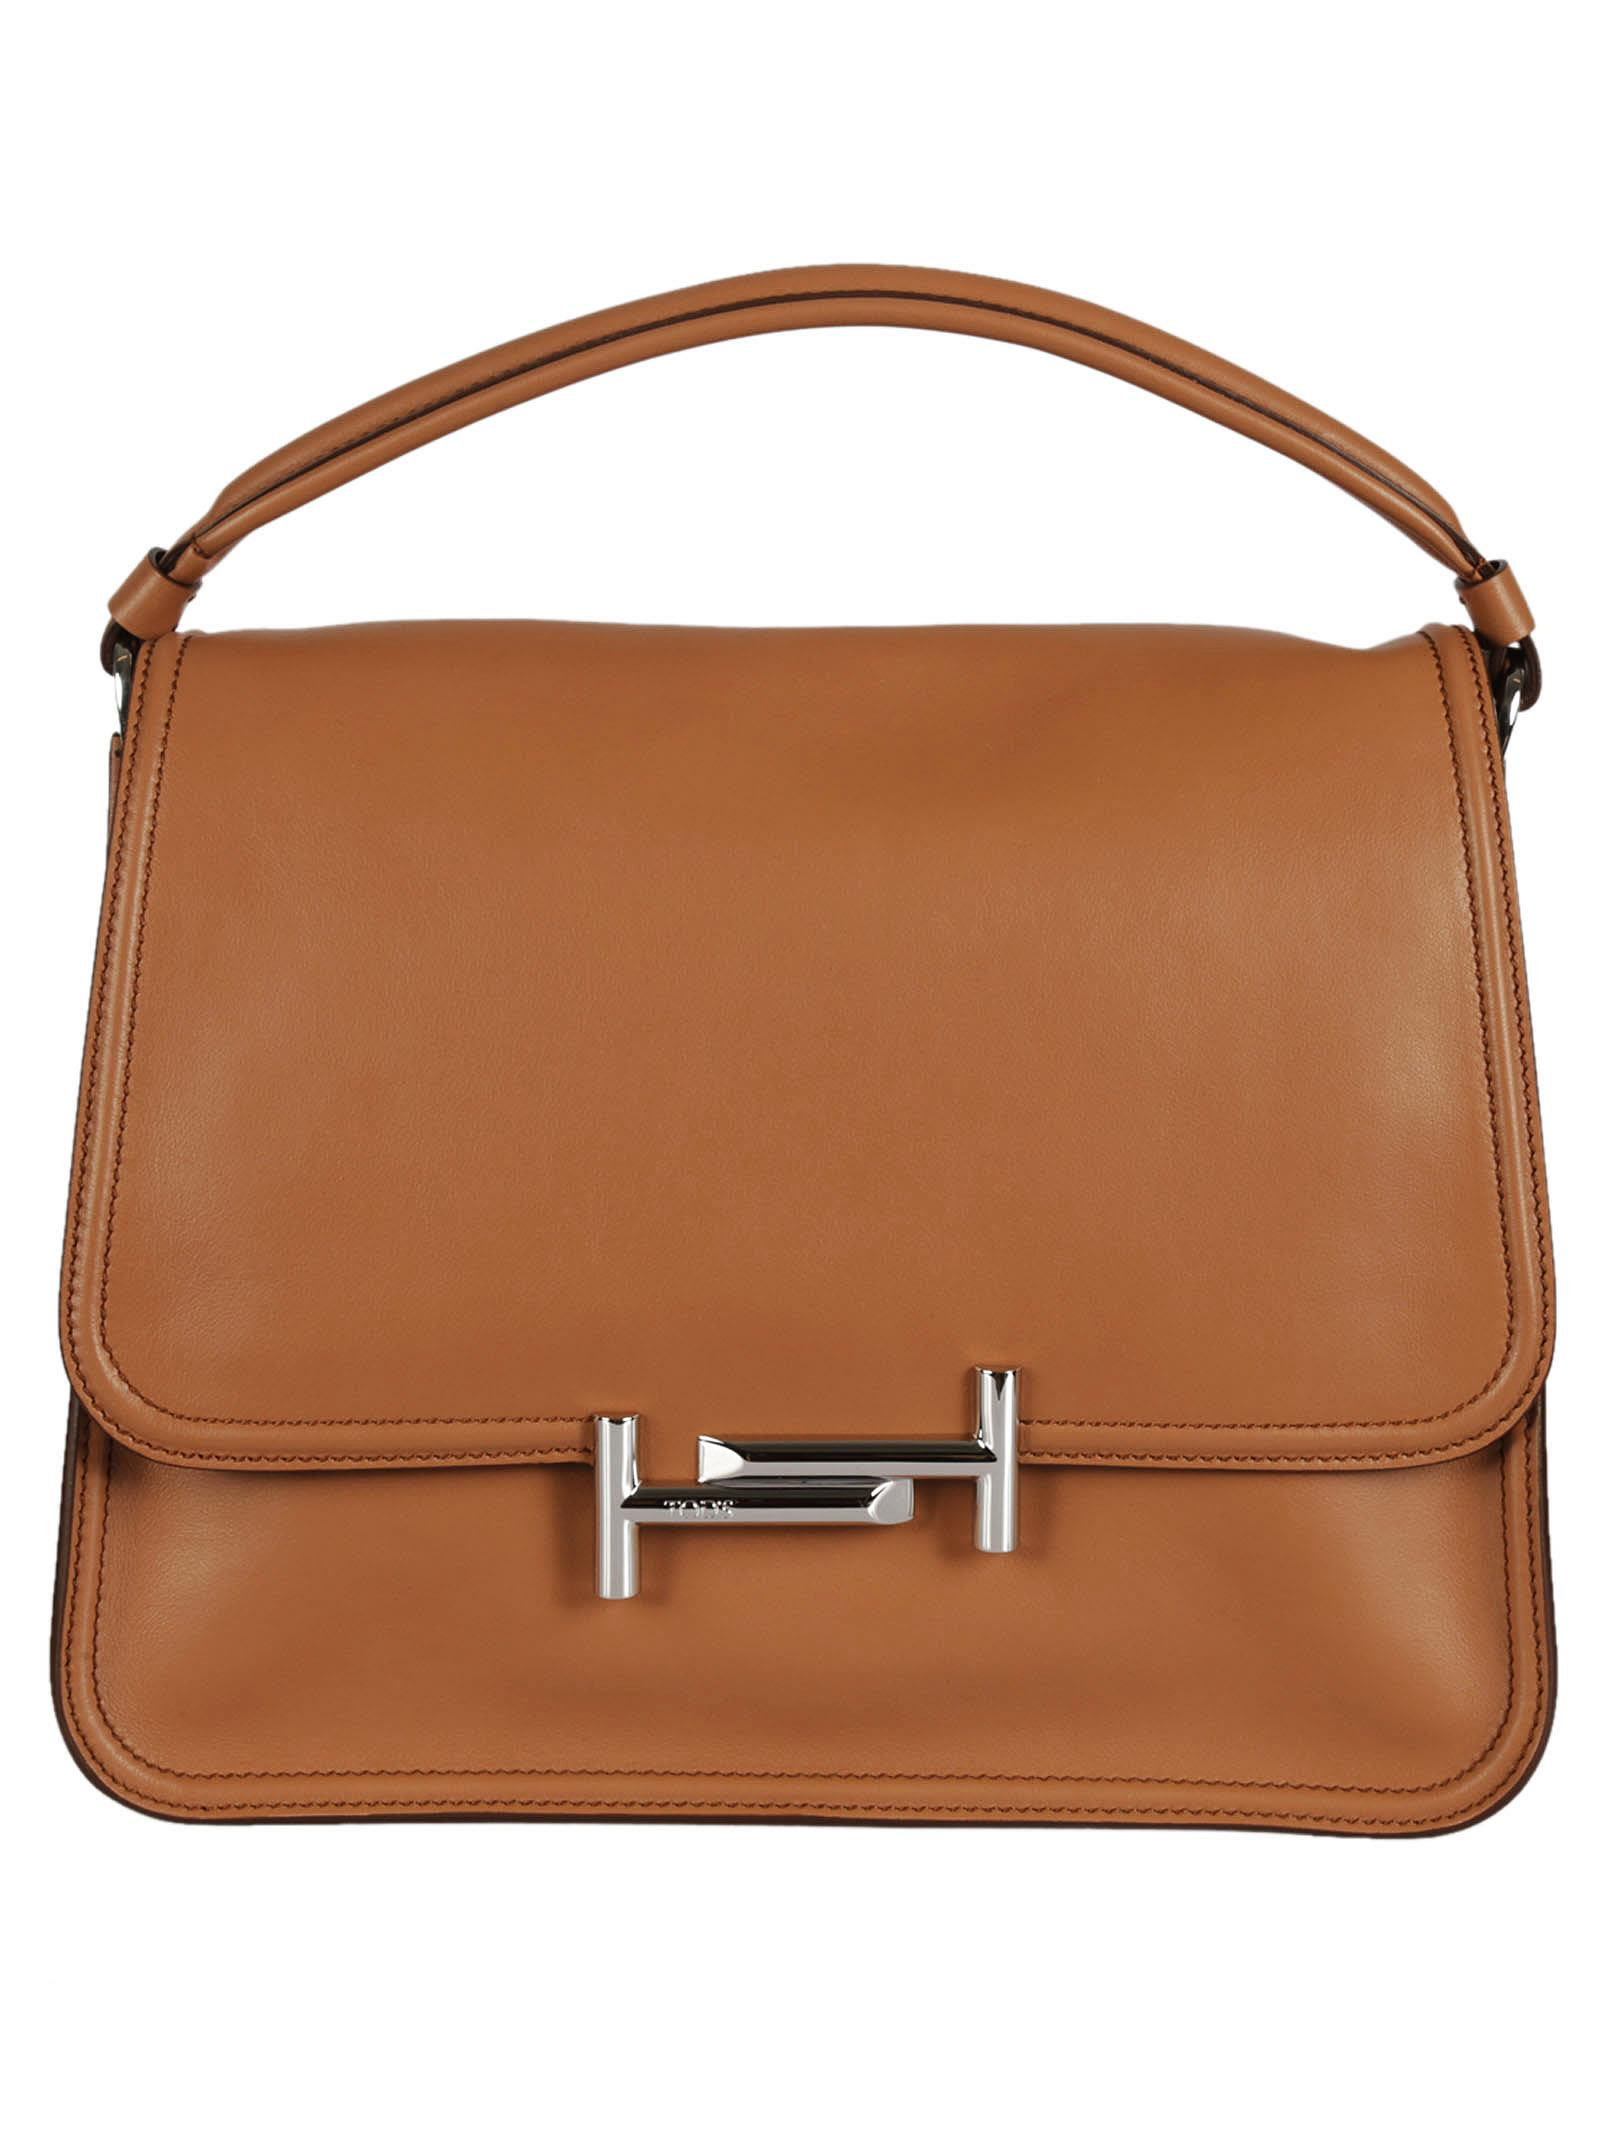 tods female tods double t tote